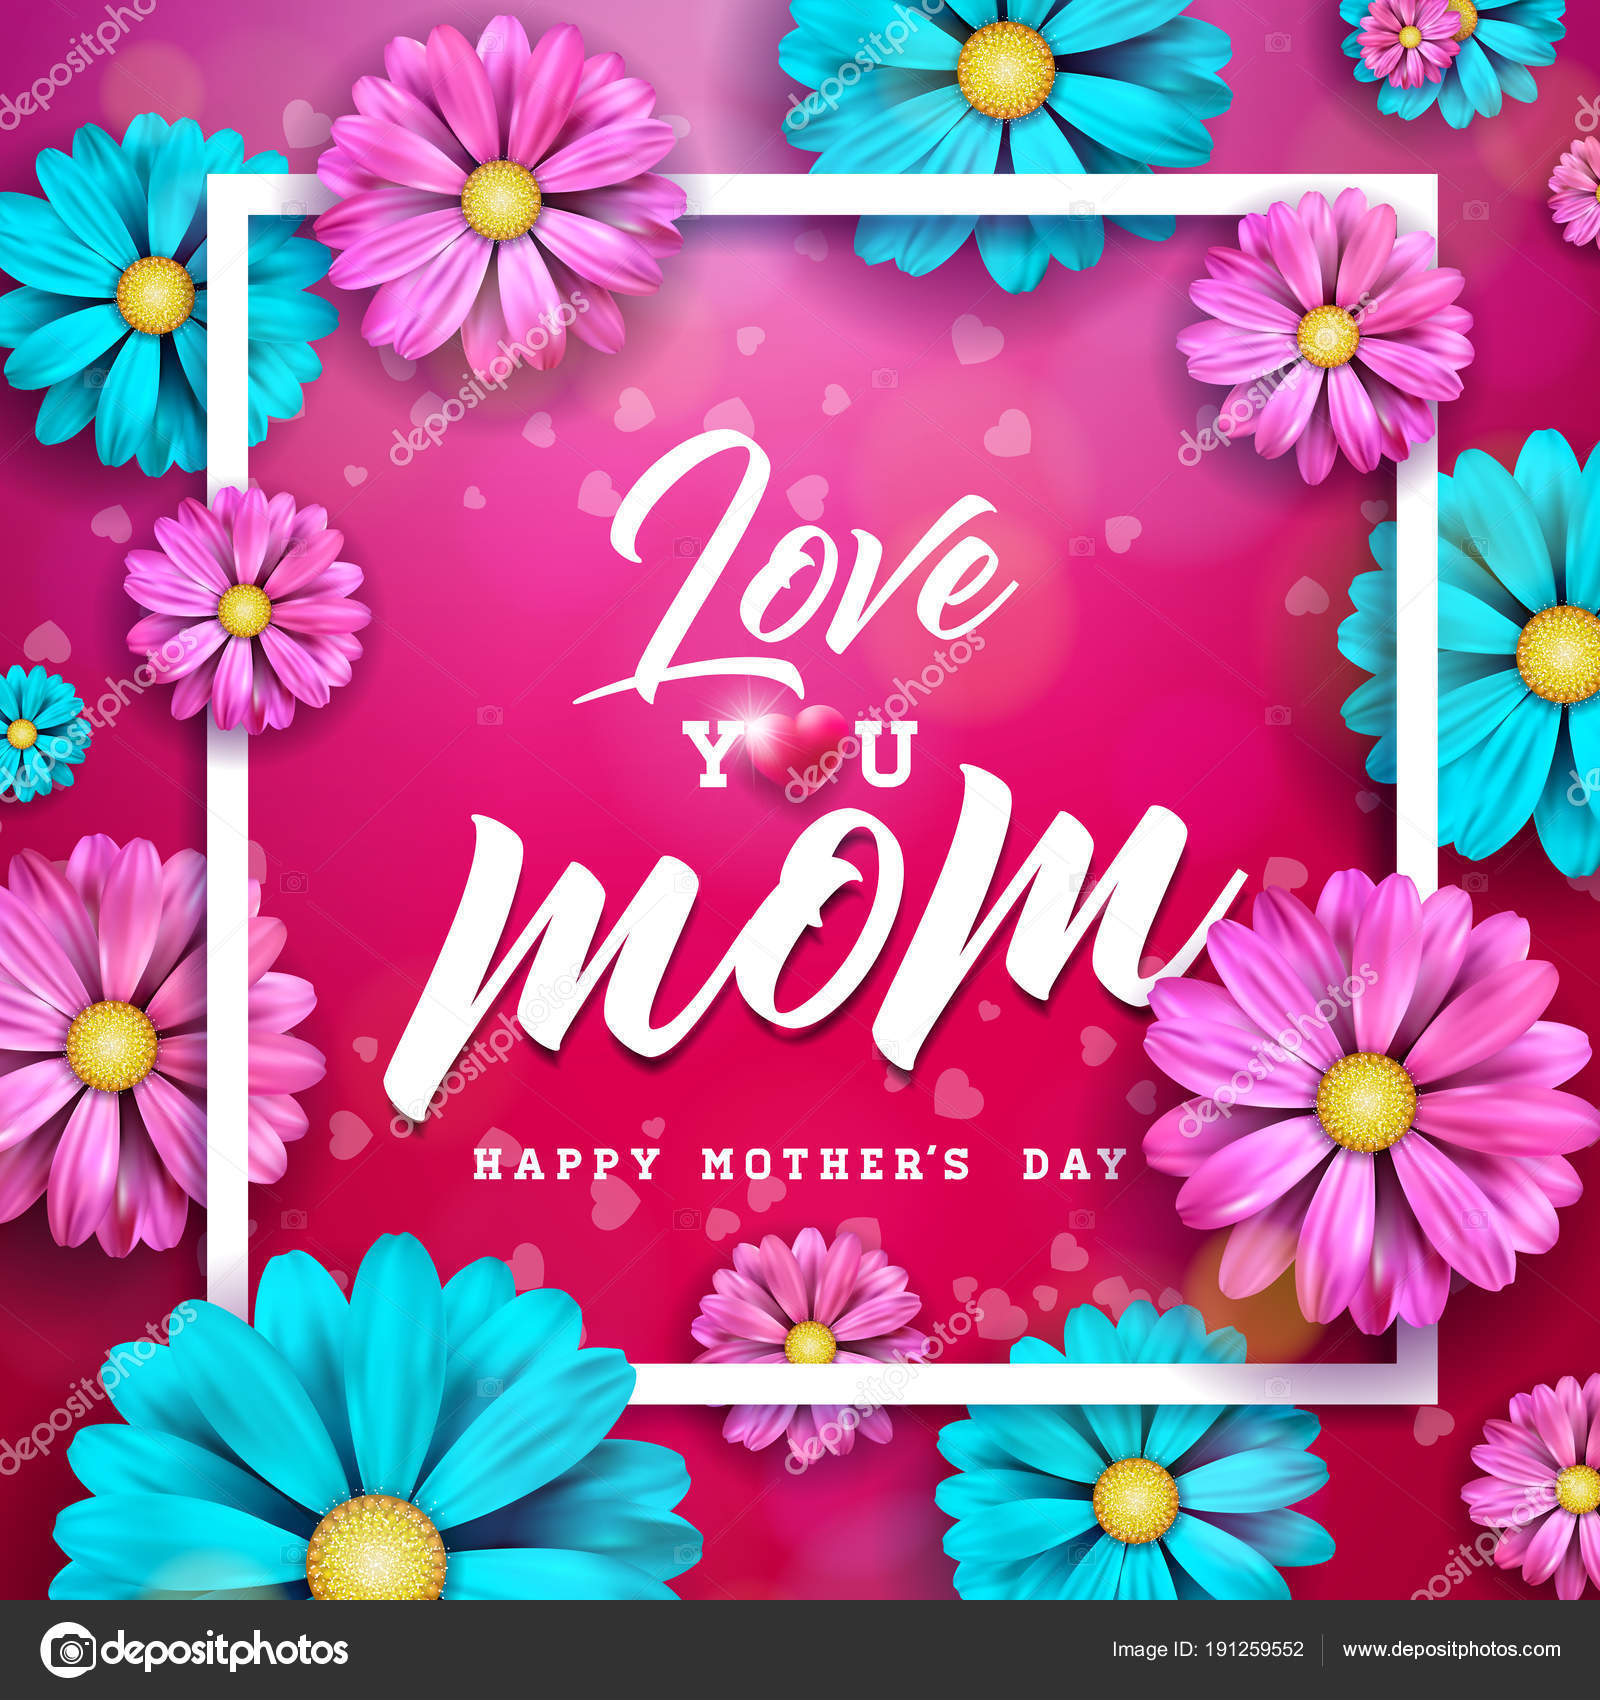 Happy mothers day greeting card design with flower and typographic happy mothers day greeting card design with flower and typographic elements on red background i m4hsunfo